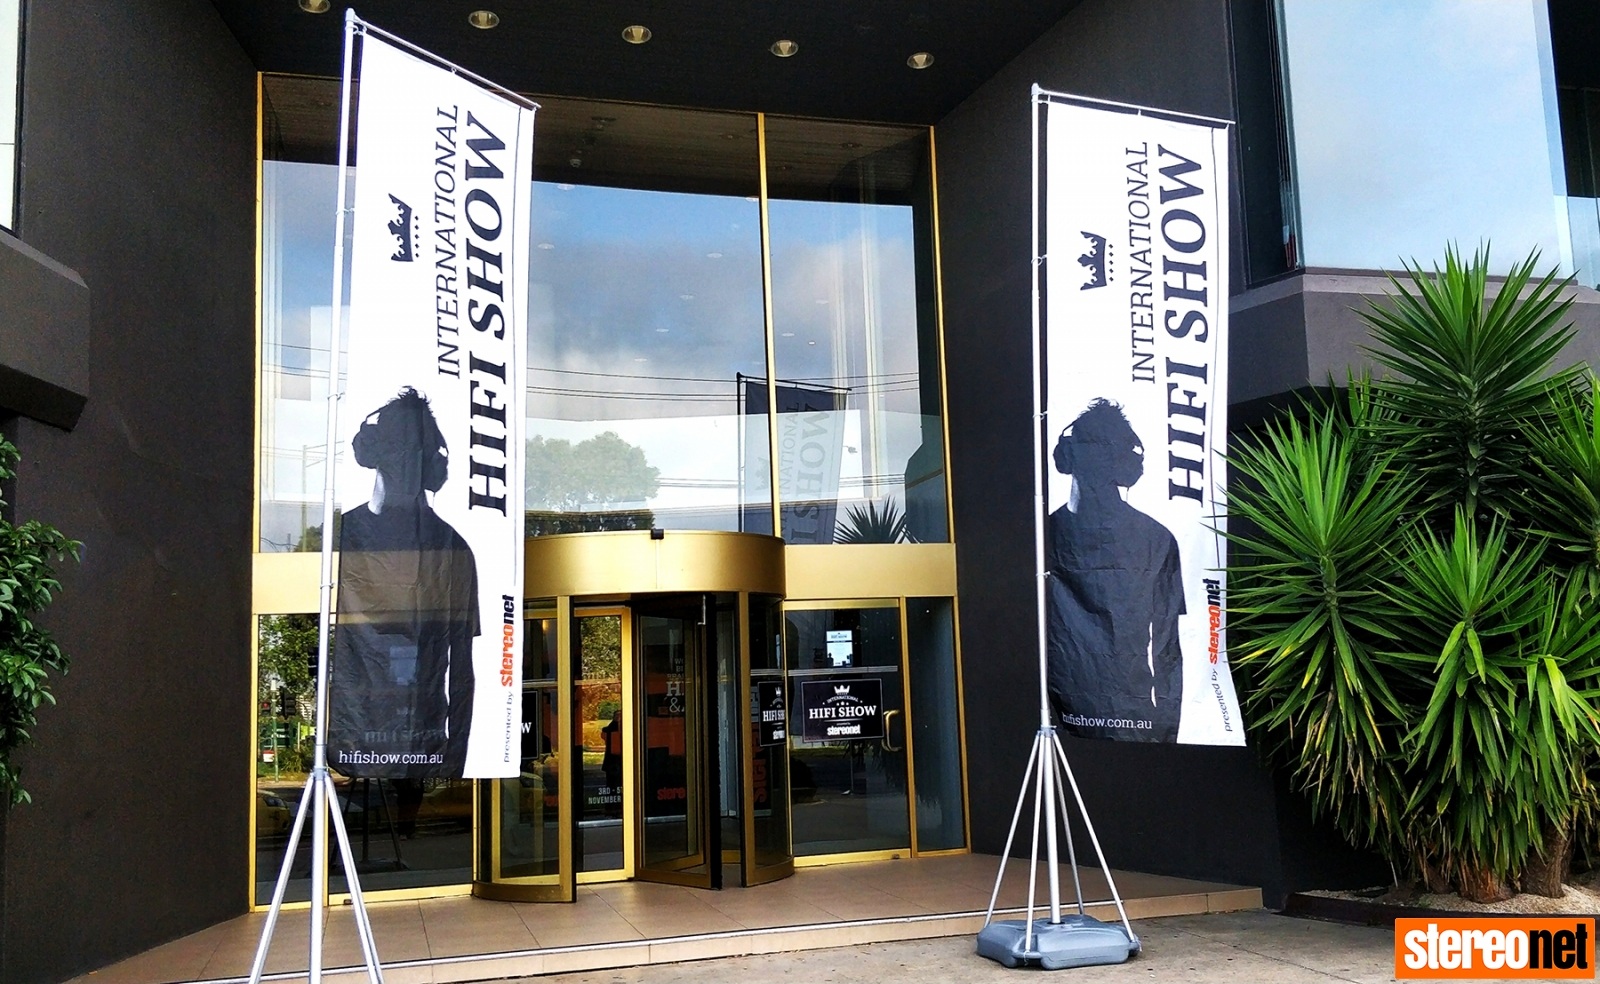 2017 Melbourne International hiFi Show